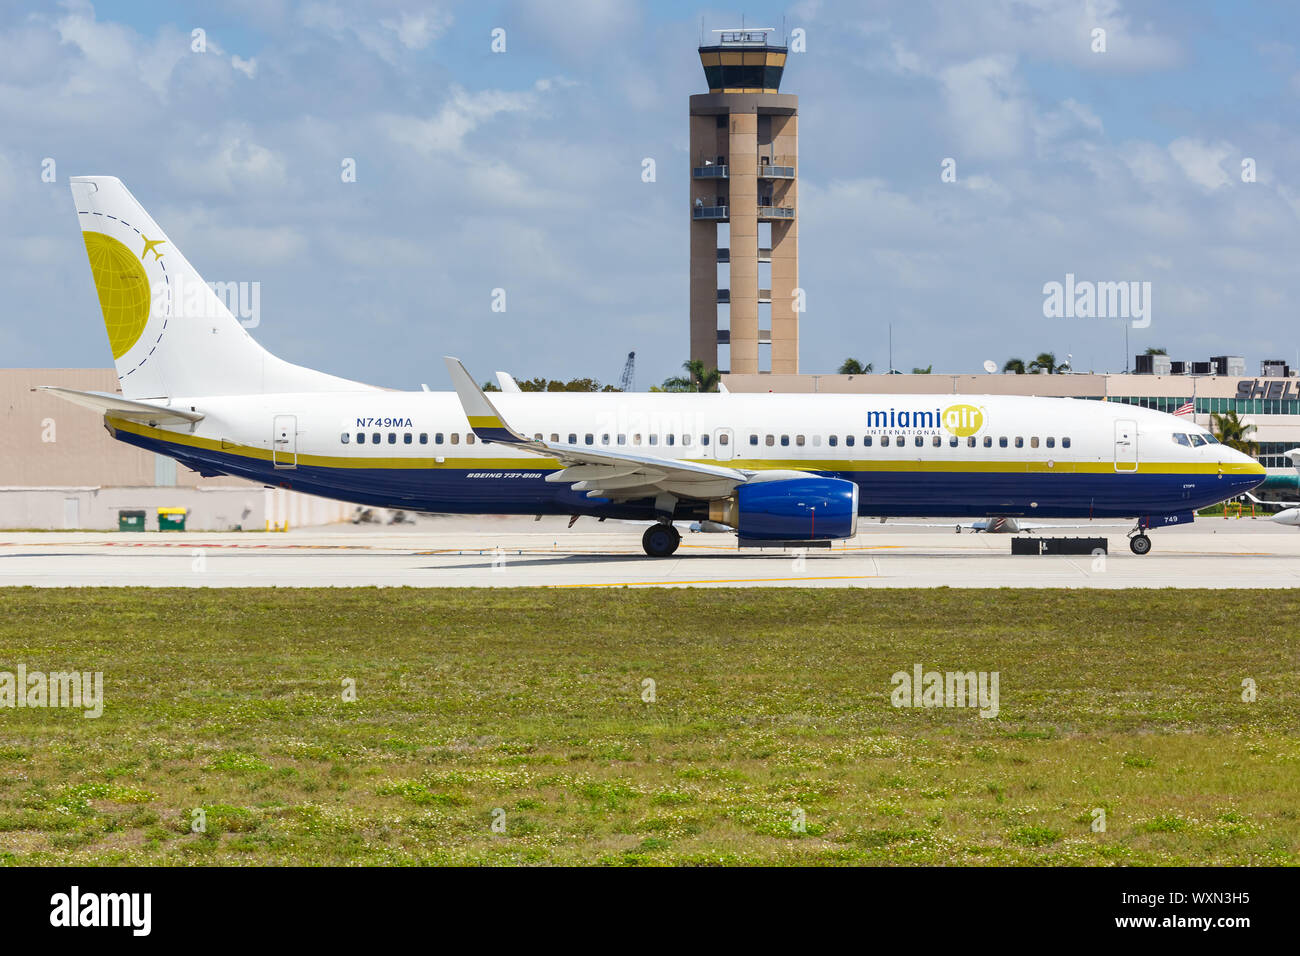 Fort Lauderdale, Florida – April 6, 2019: Miami Air International Boeing 737-800 airplane at Fort Lauderdale airport (FLL) in Florida. Stock Photo